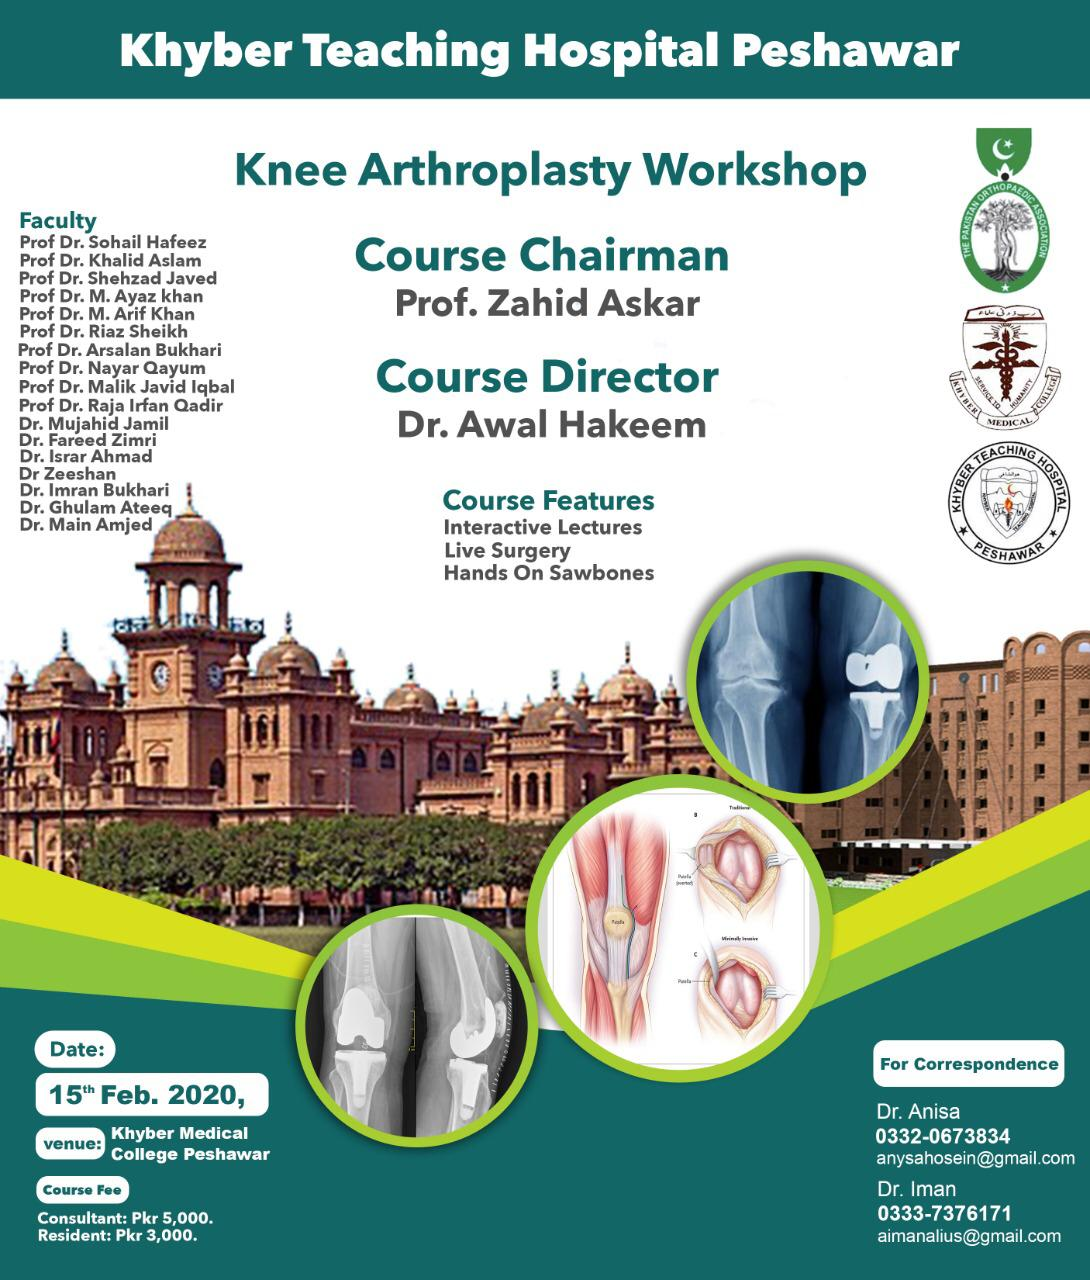 Knee Arthroplasty Workshop